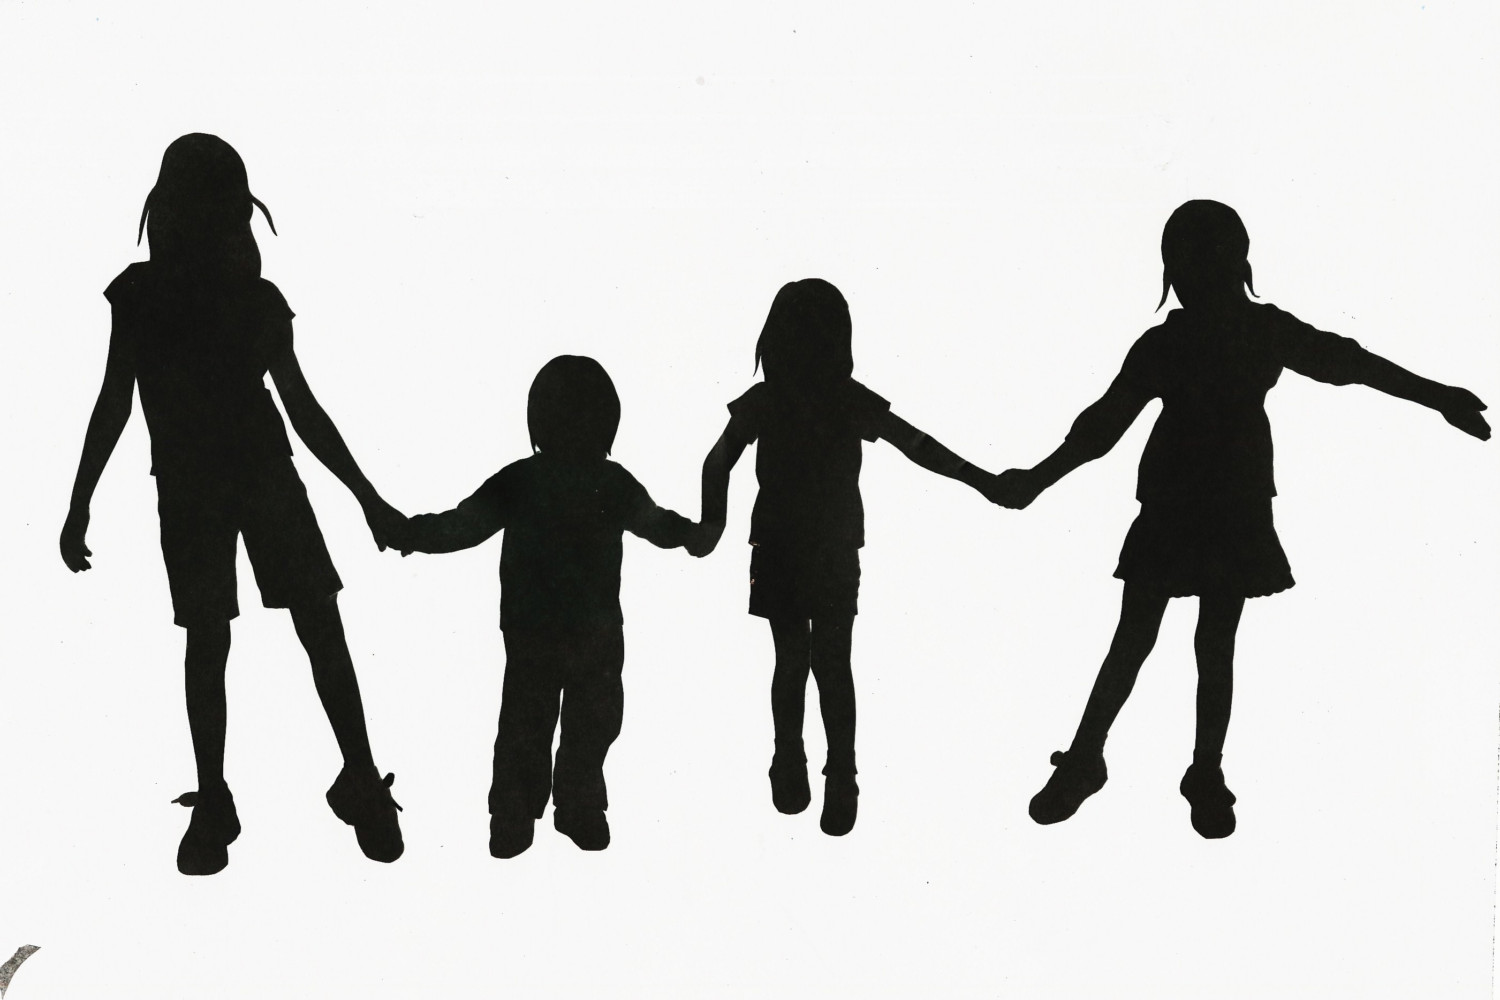 Sisters holding hands clipart image royalty free download Images For > Two Sisters Holding Hands Silhouette - Cliparts.co image royalty free download